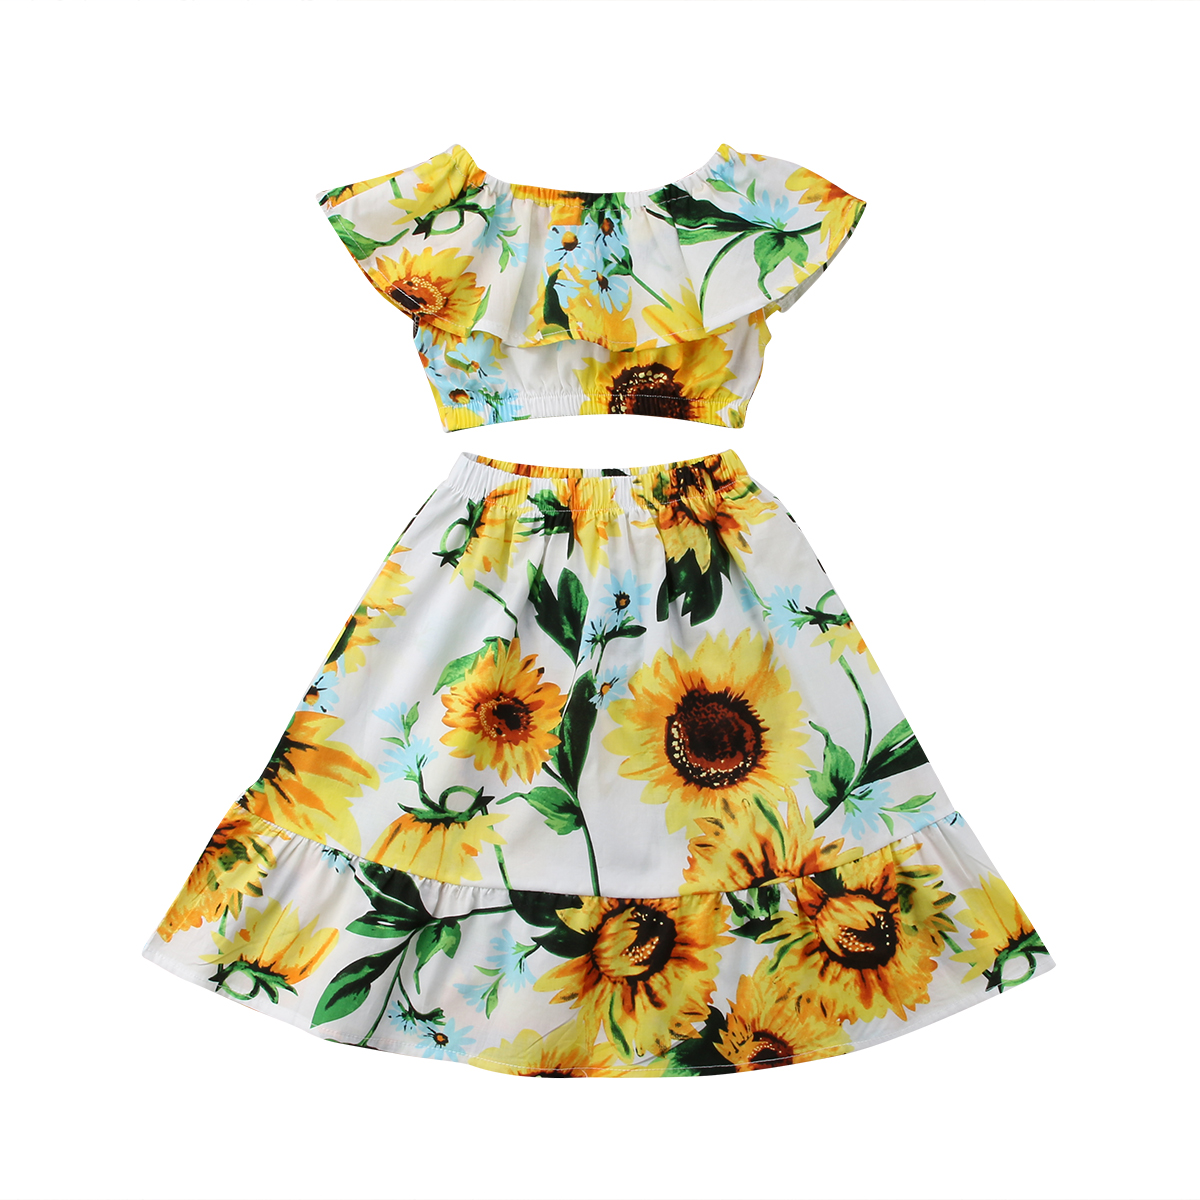 Kids Baby Girls Flower Off Shoulder Crop Tops Skirts Outfits Sunflower Print Summer Ruffles Clothes Set 2-7Y